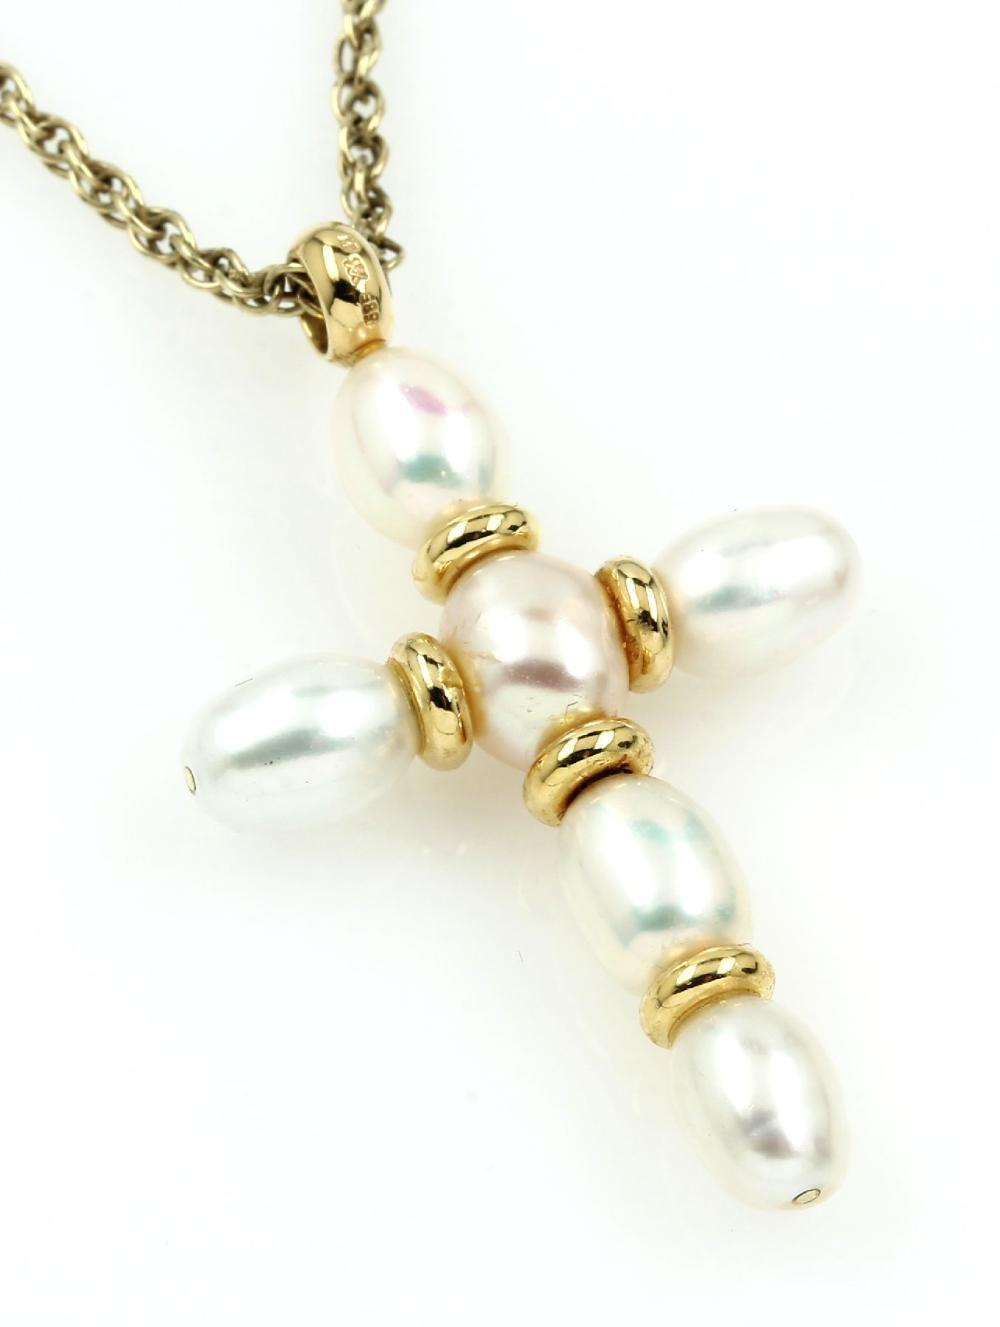 Crosspendant with cultured pearls